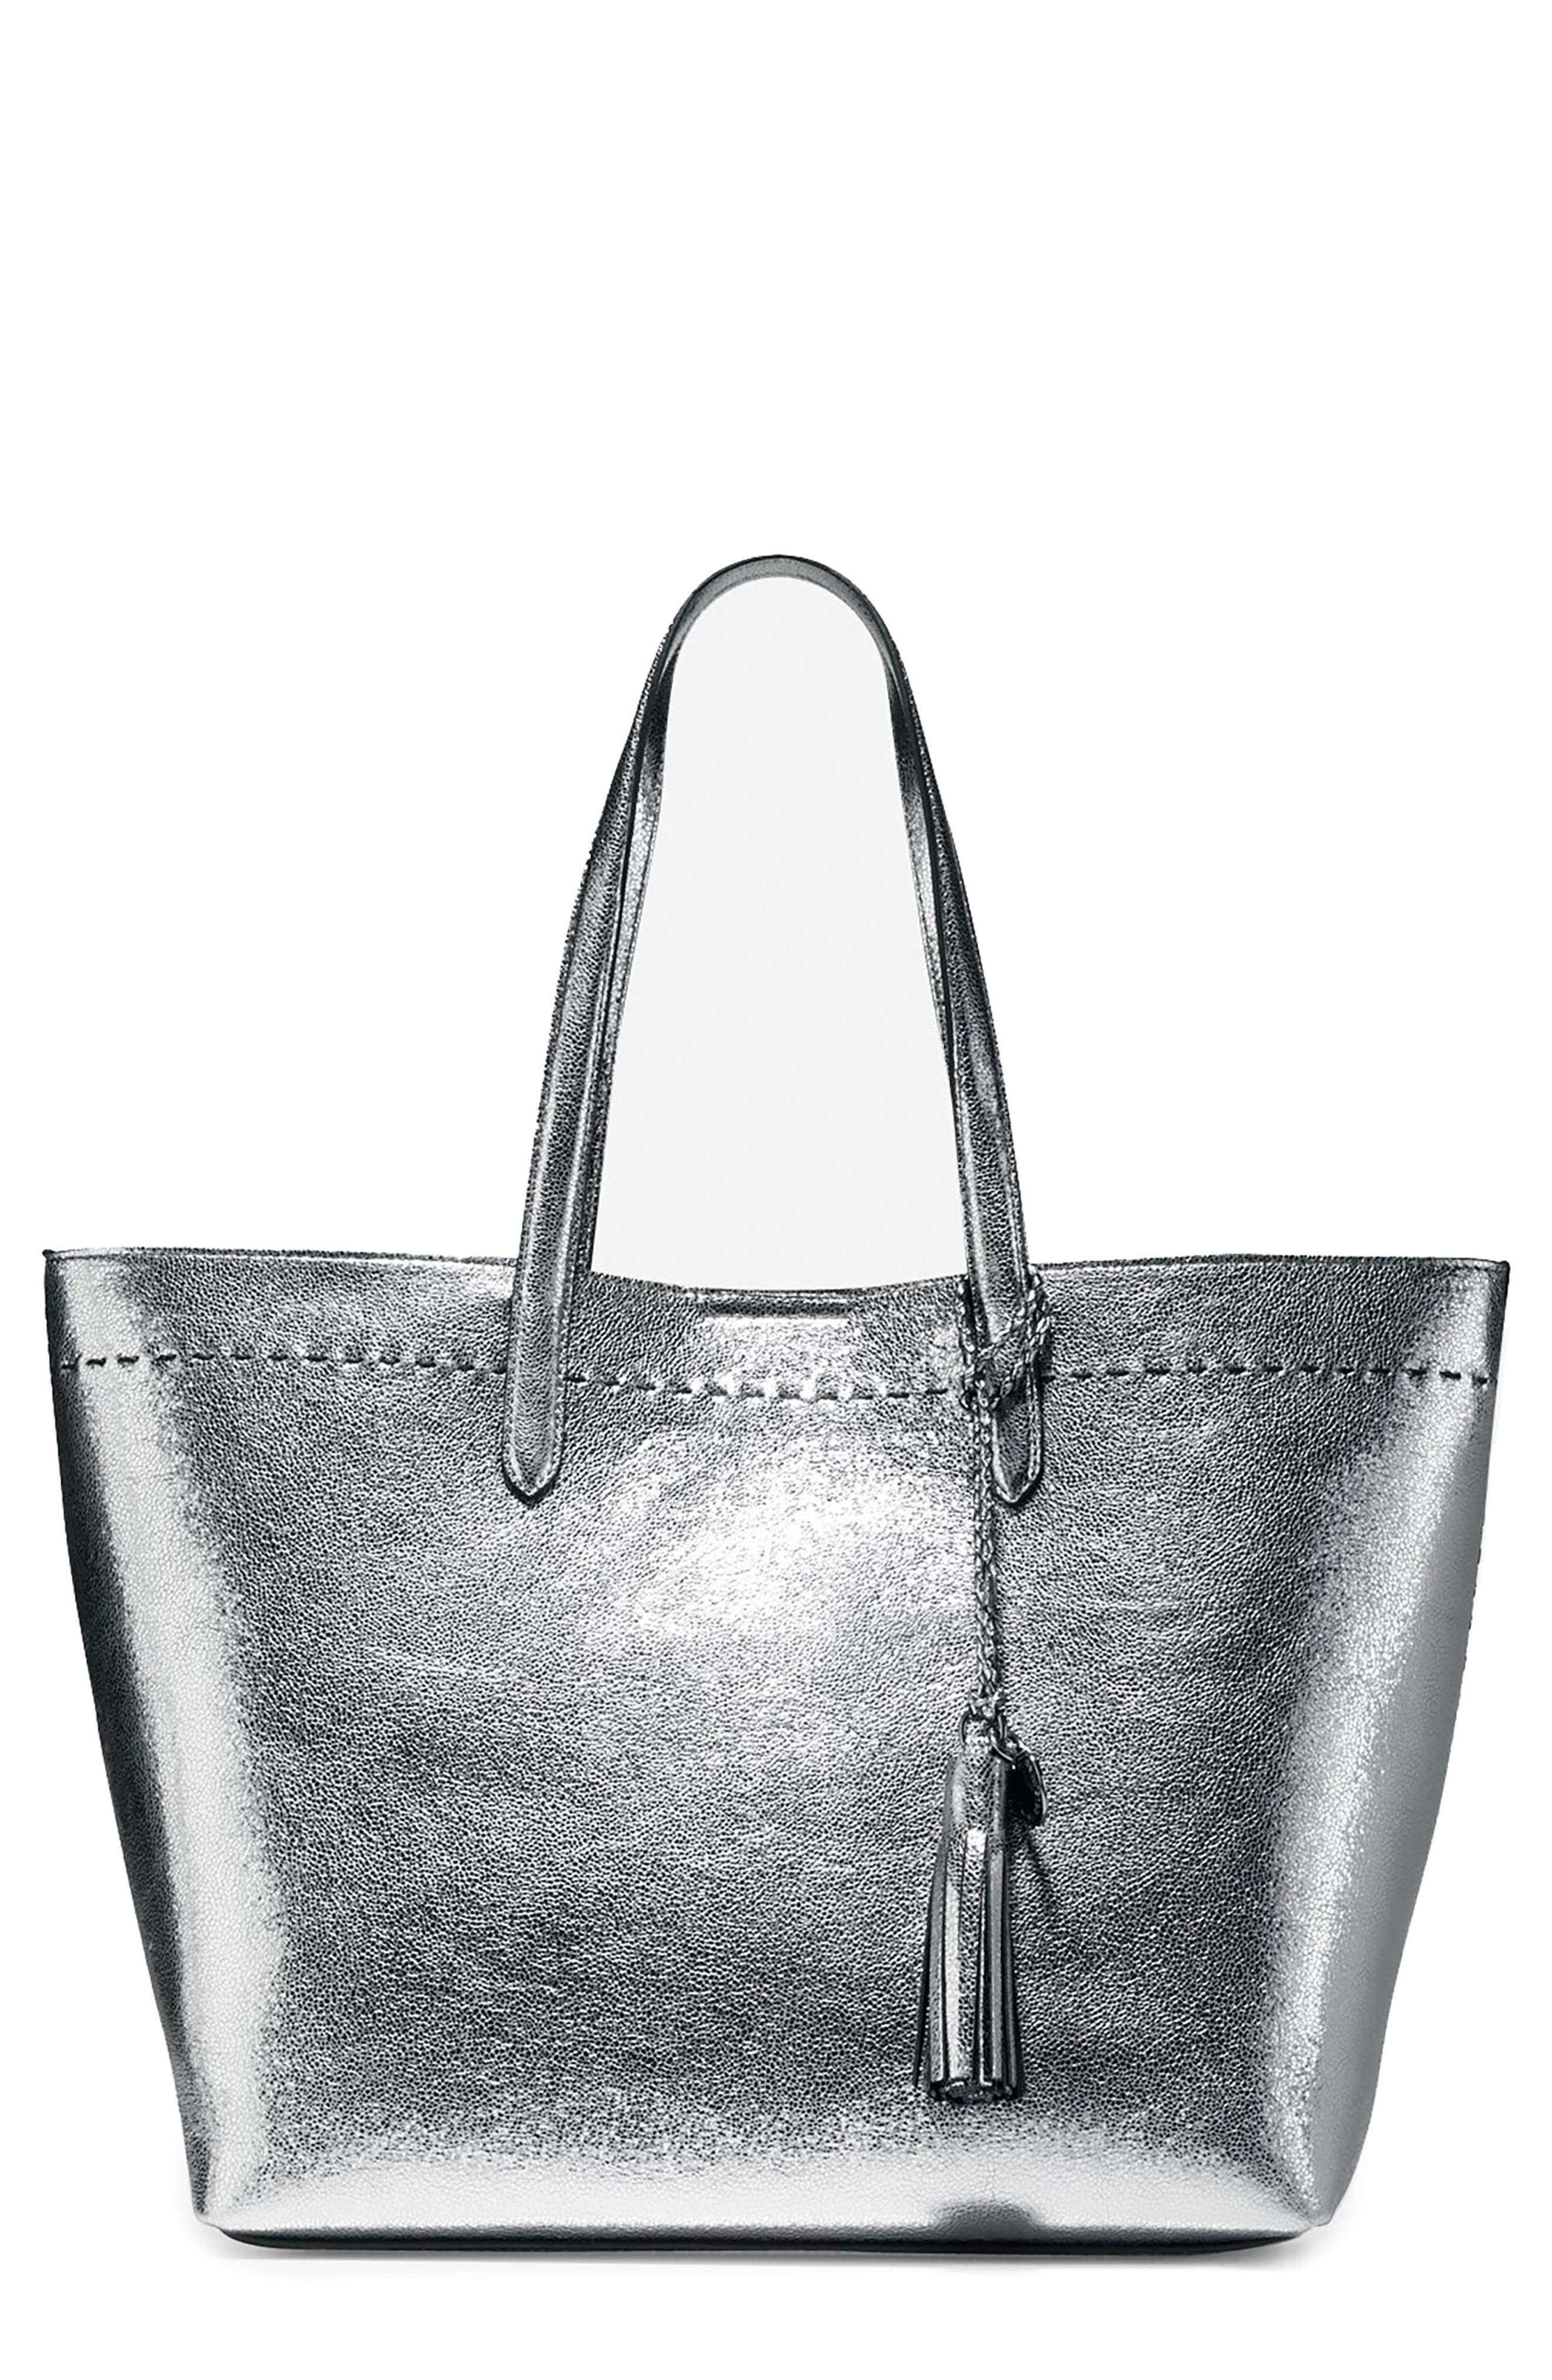 Main Image - Cole Haan Payson Metallic Leather Tote